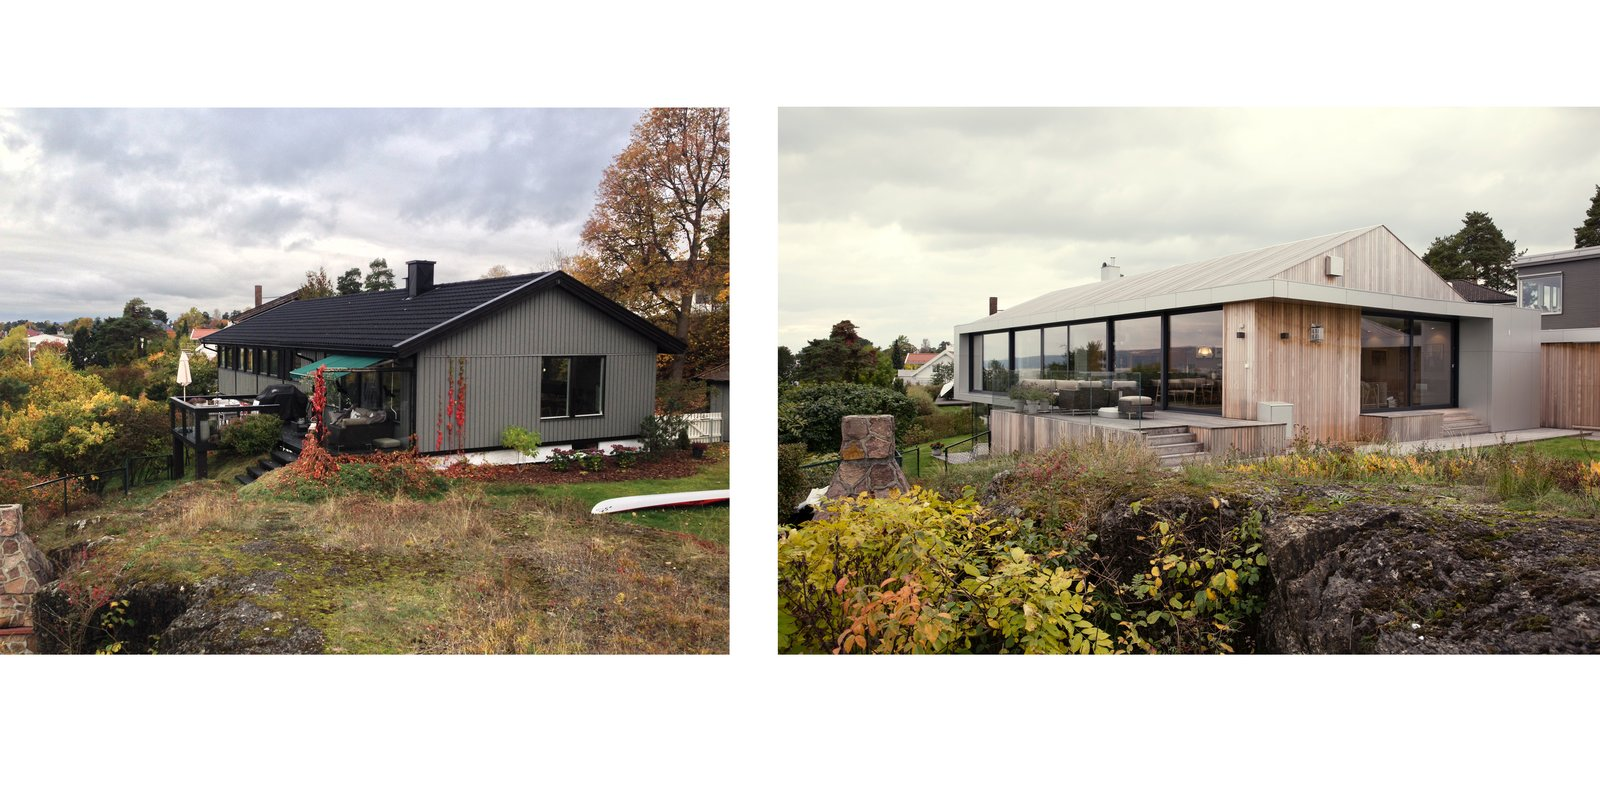 A Moelven modular prefab home in Norway, before and after renovation.